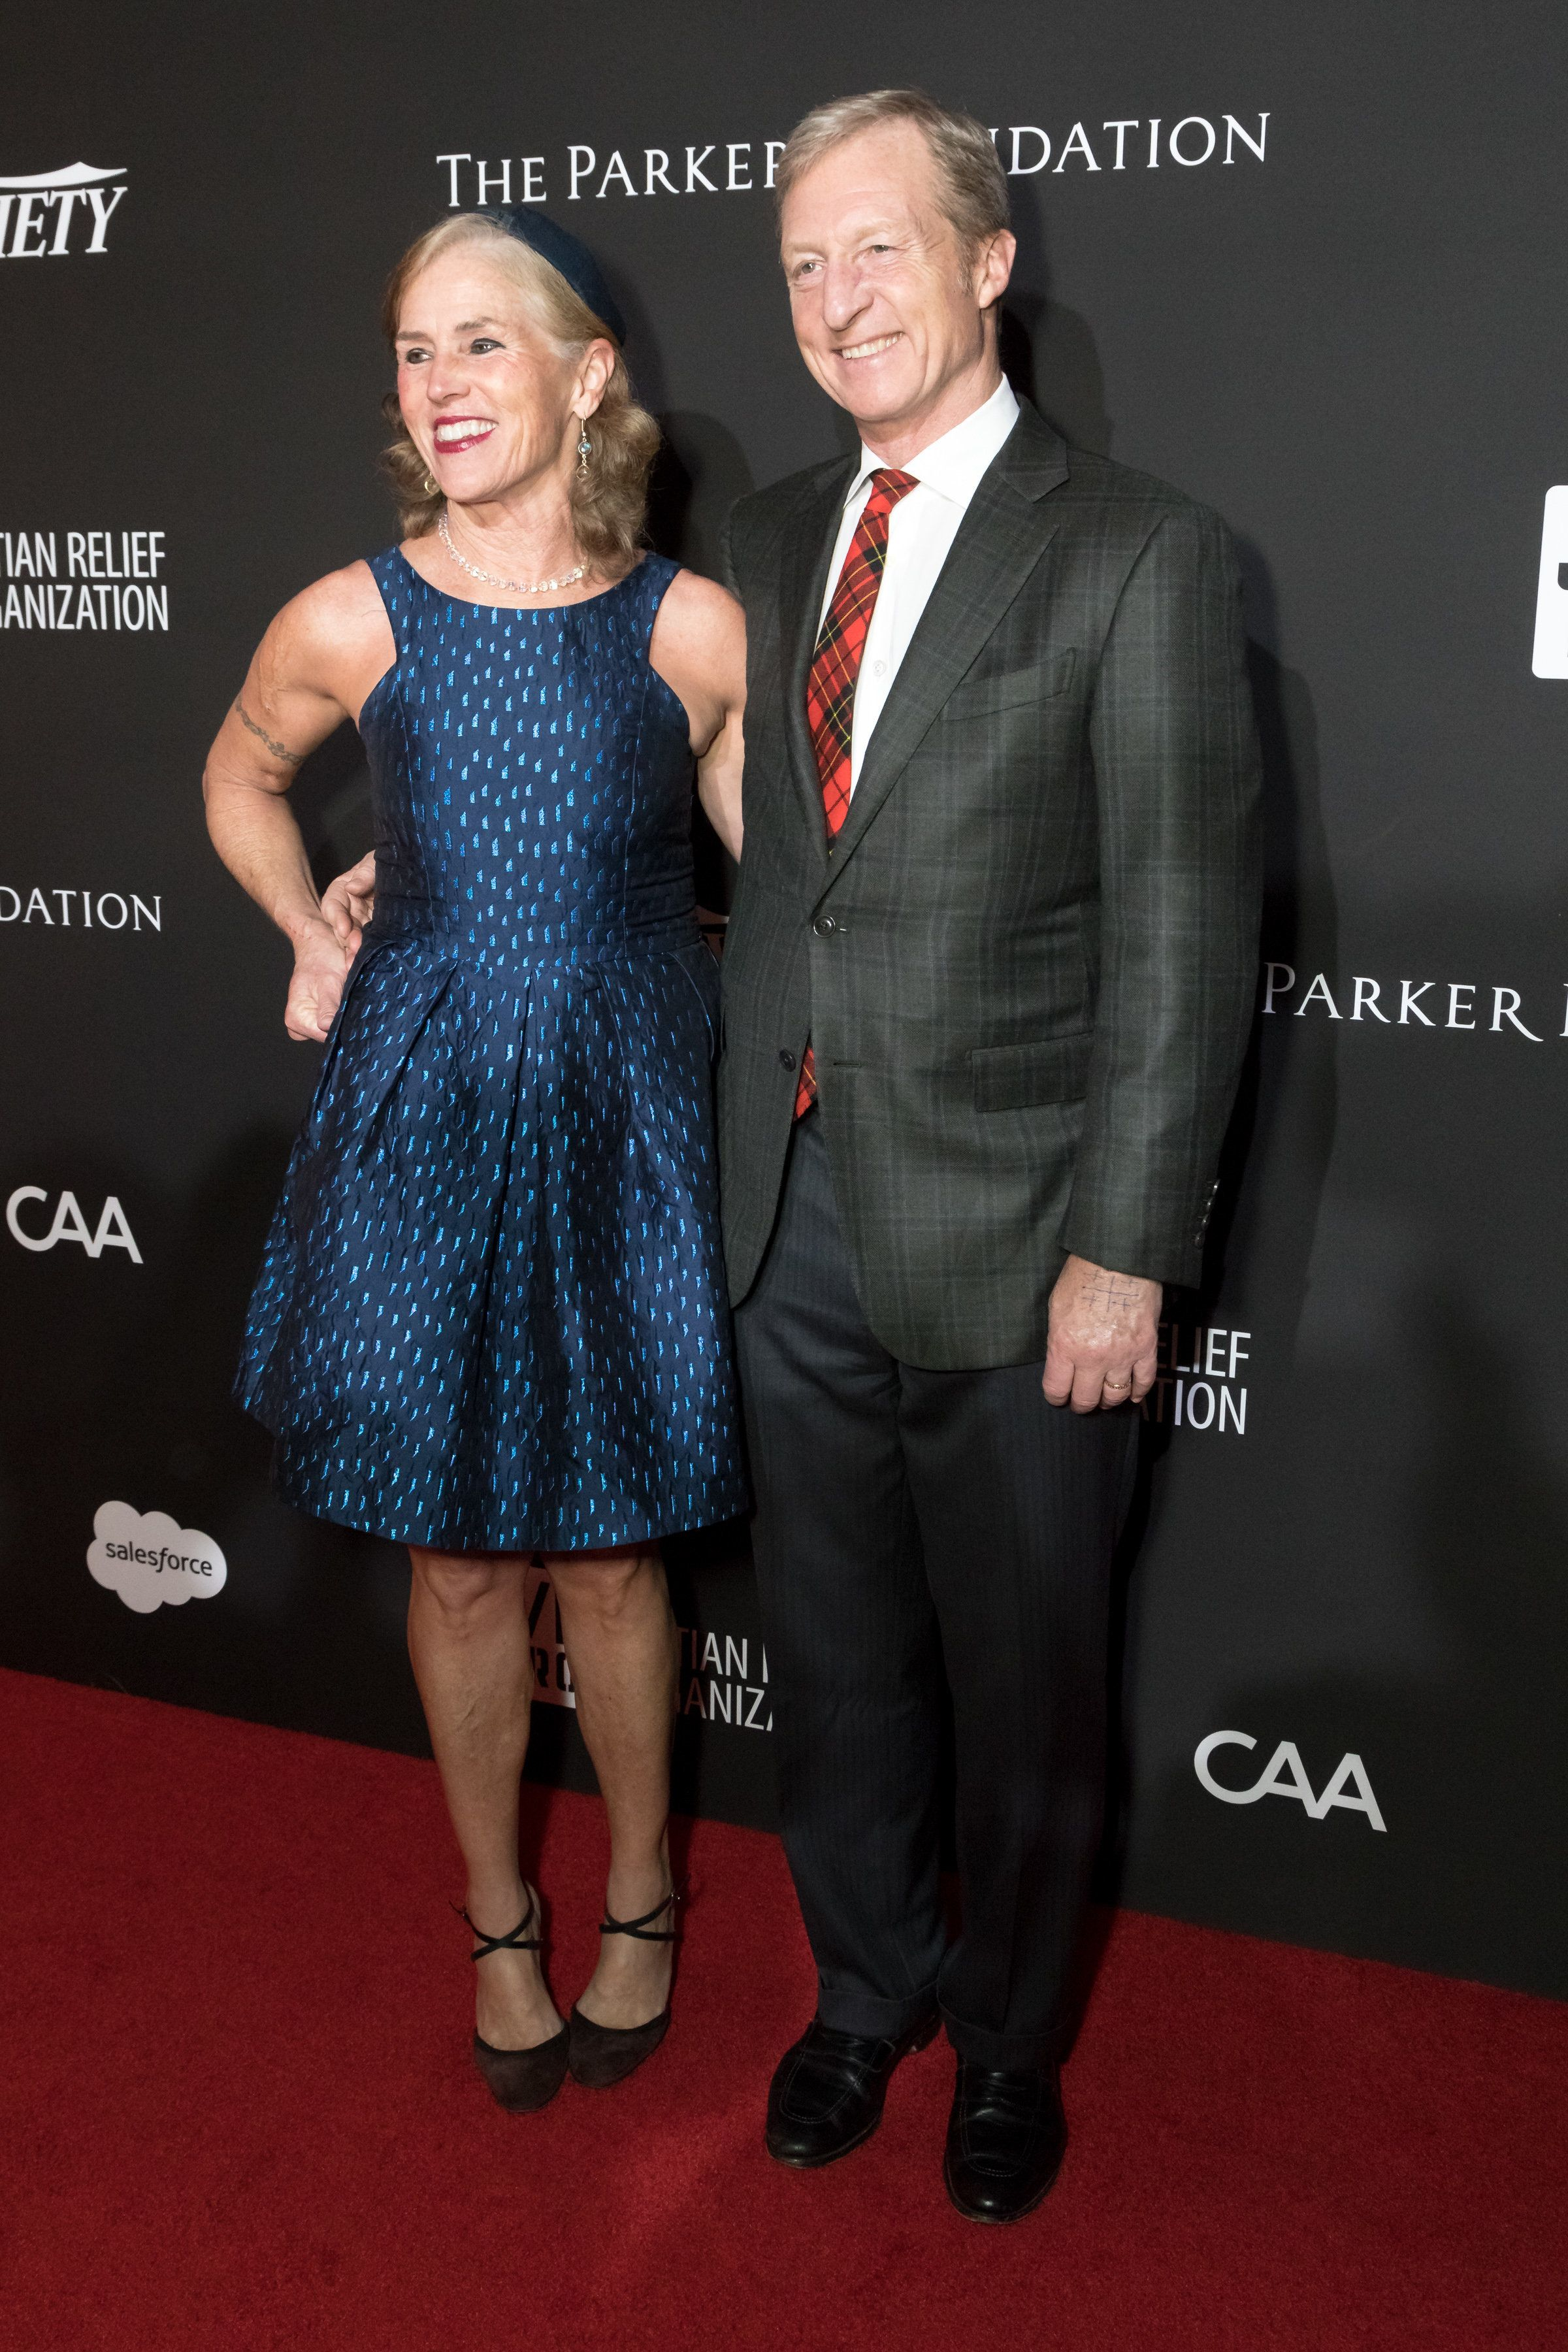 LOS ANGELES, CALIFORNIA - JANUARY 06:  Kat Taylor (L) and Tom Steyer attend the SEAN PENN J/P HRO GALA: A Gala Dinner to Benefit J/P Haitian Relief Organization and a Coalition of Disaster Relief Organizations at Milk Studios on January 6, 2018 in Los Angeles, California.  (Photo by Greg Doherty/Patrick McMullan via Getty Image)